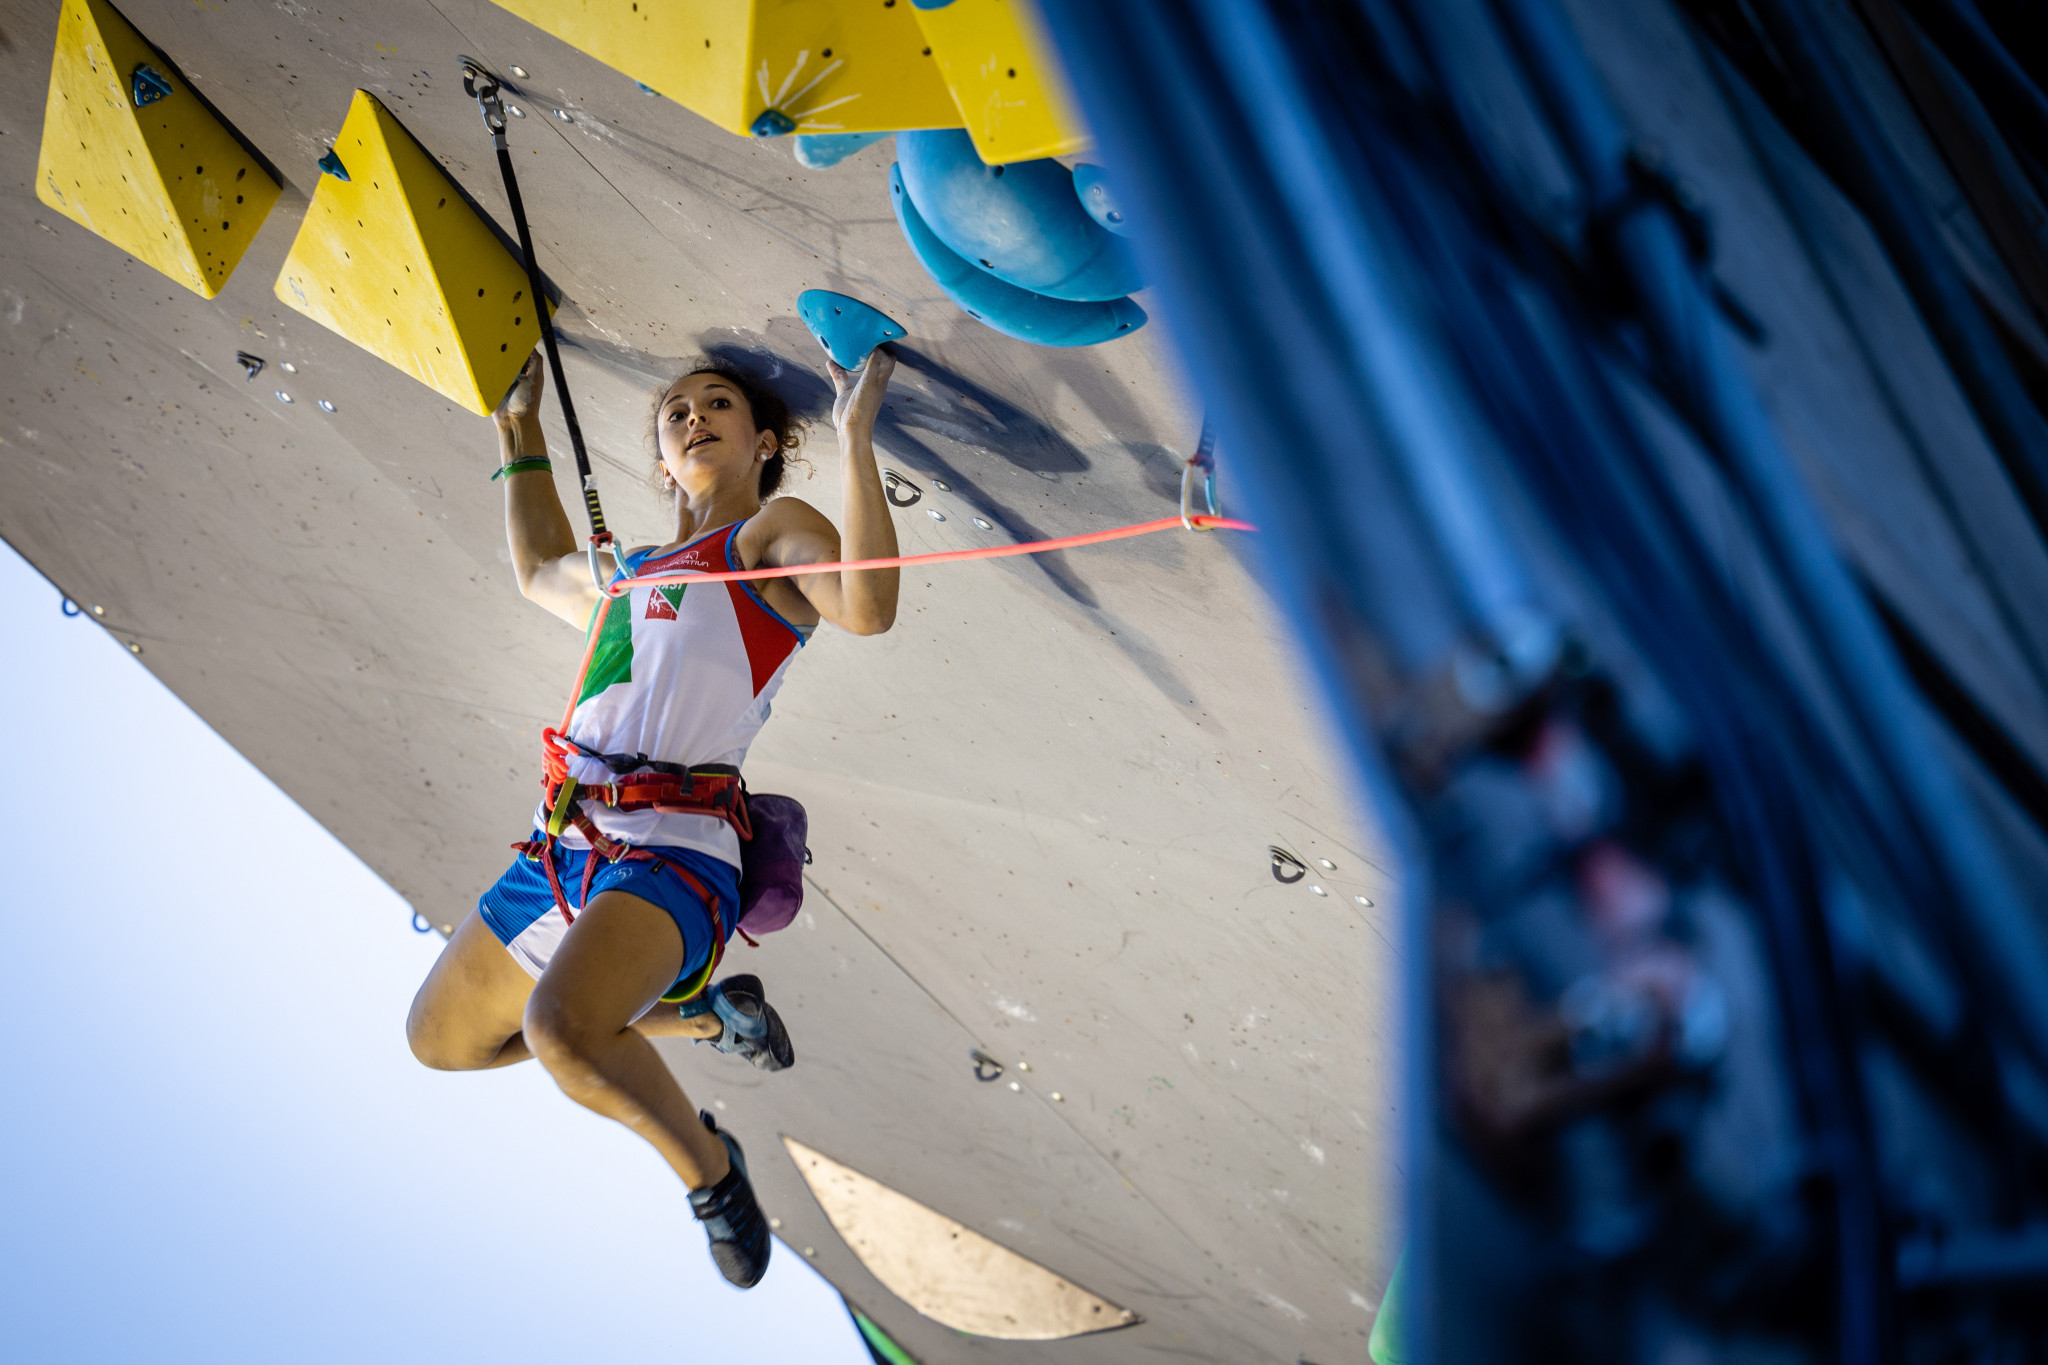 Italy's Tesio Giorgia in action during the 2020 IFSC World Cup in Briançon ©IFSC